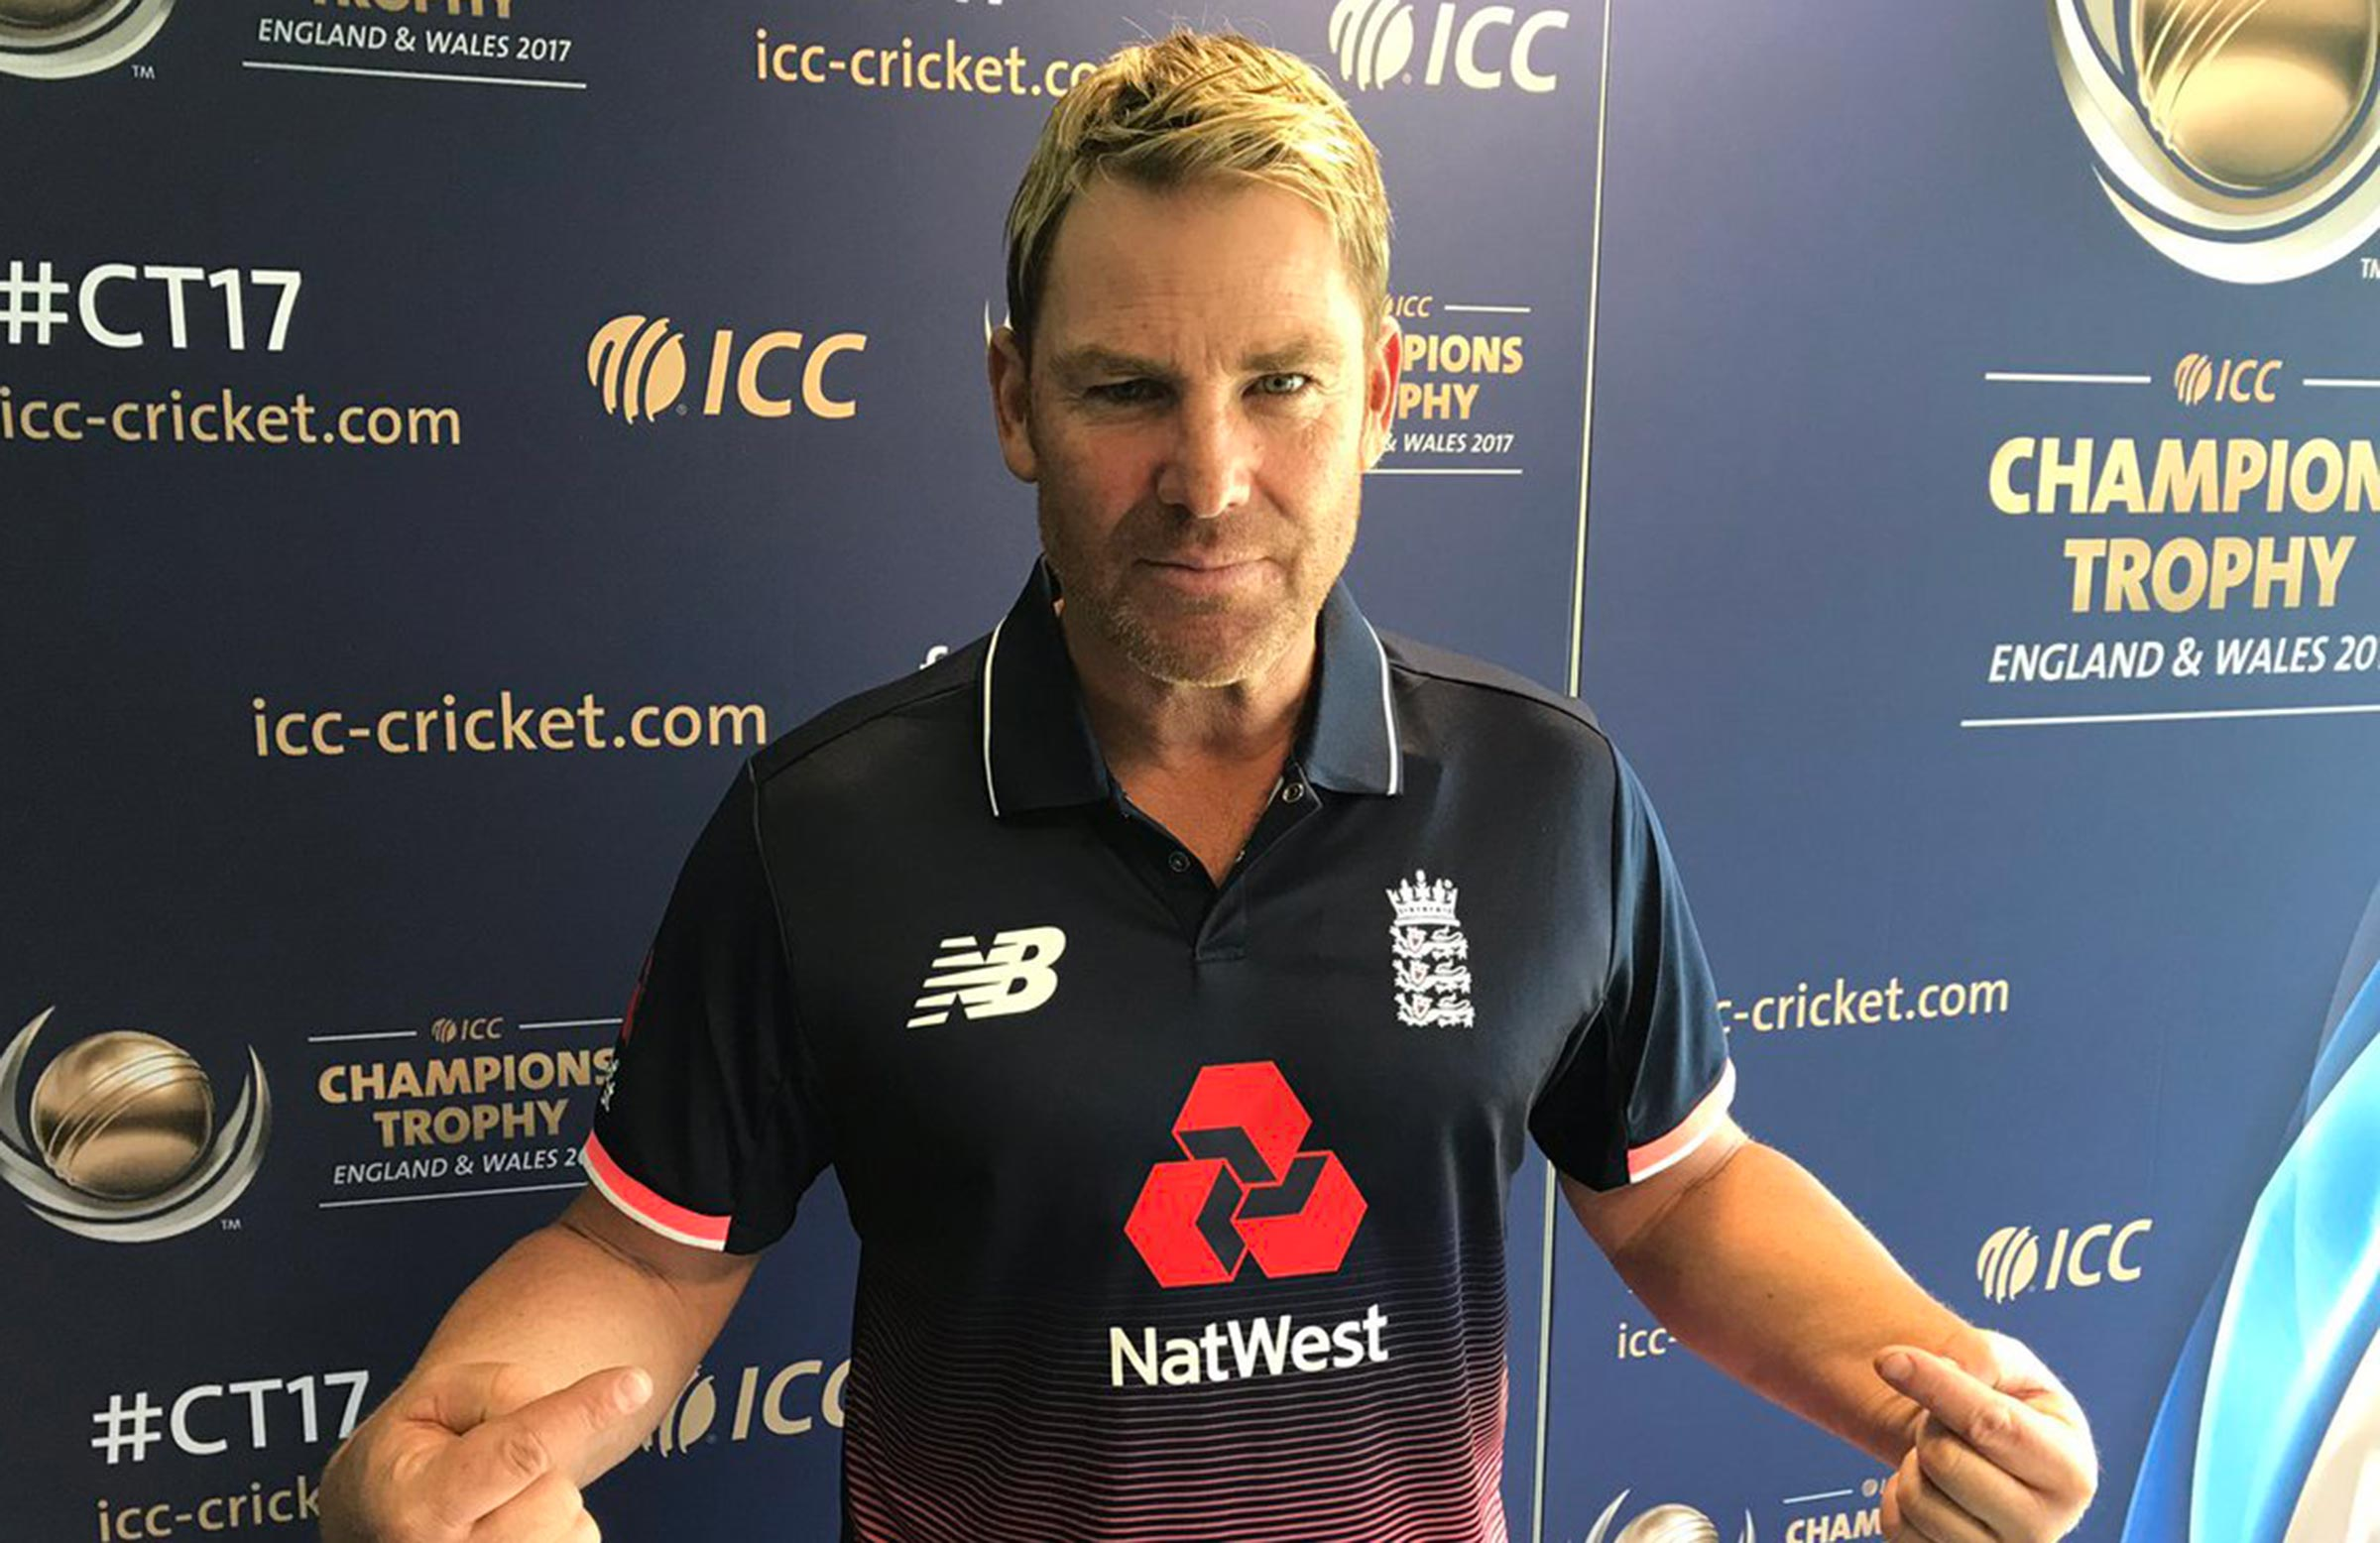 Champions Trophy: Shane Warne Shows Off England Jersey!